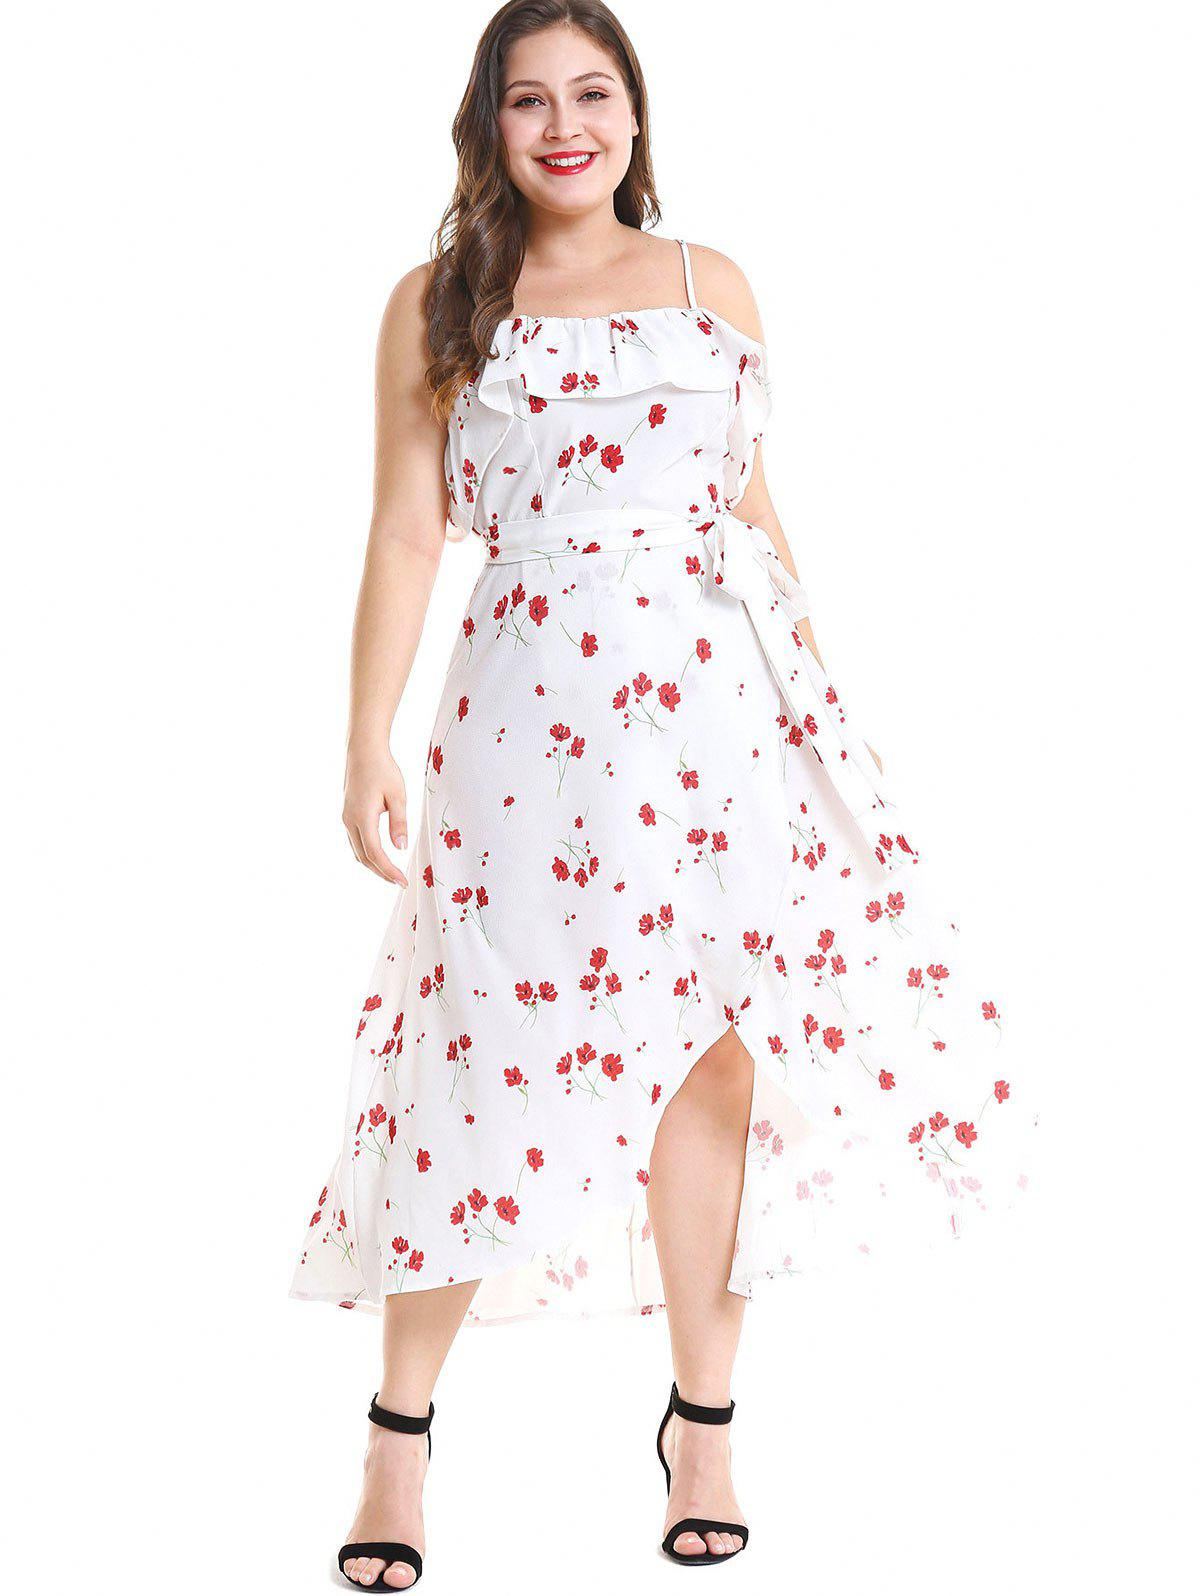 Plus Size Flower Girl Gowns – DACC